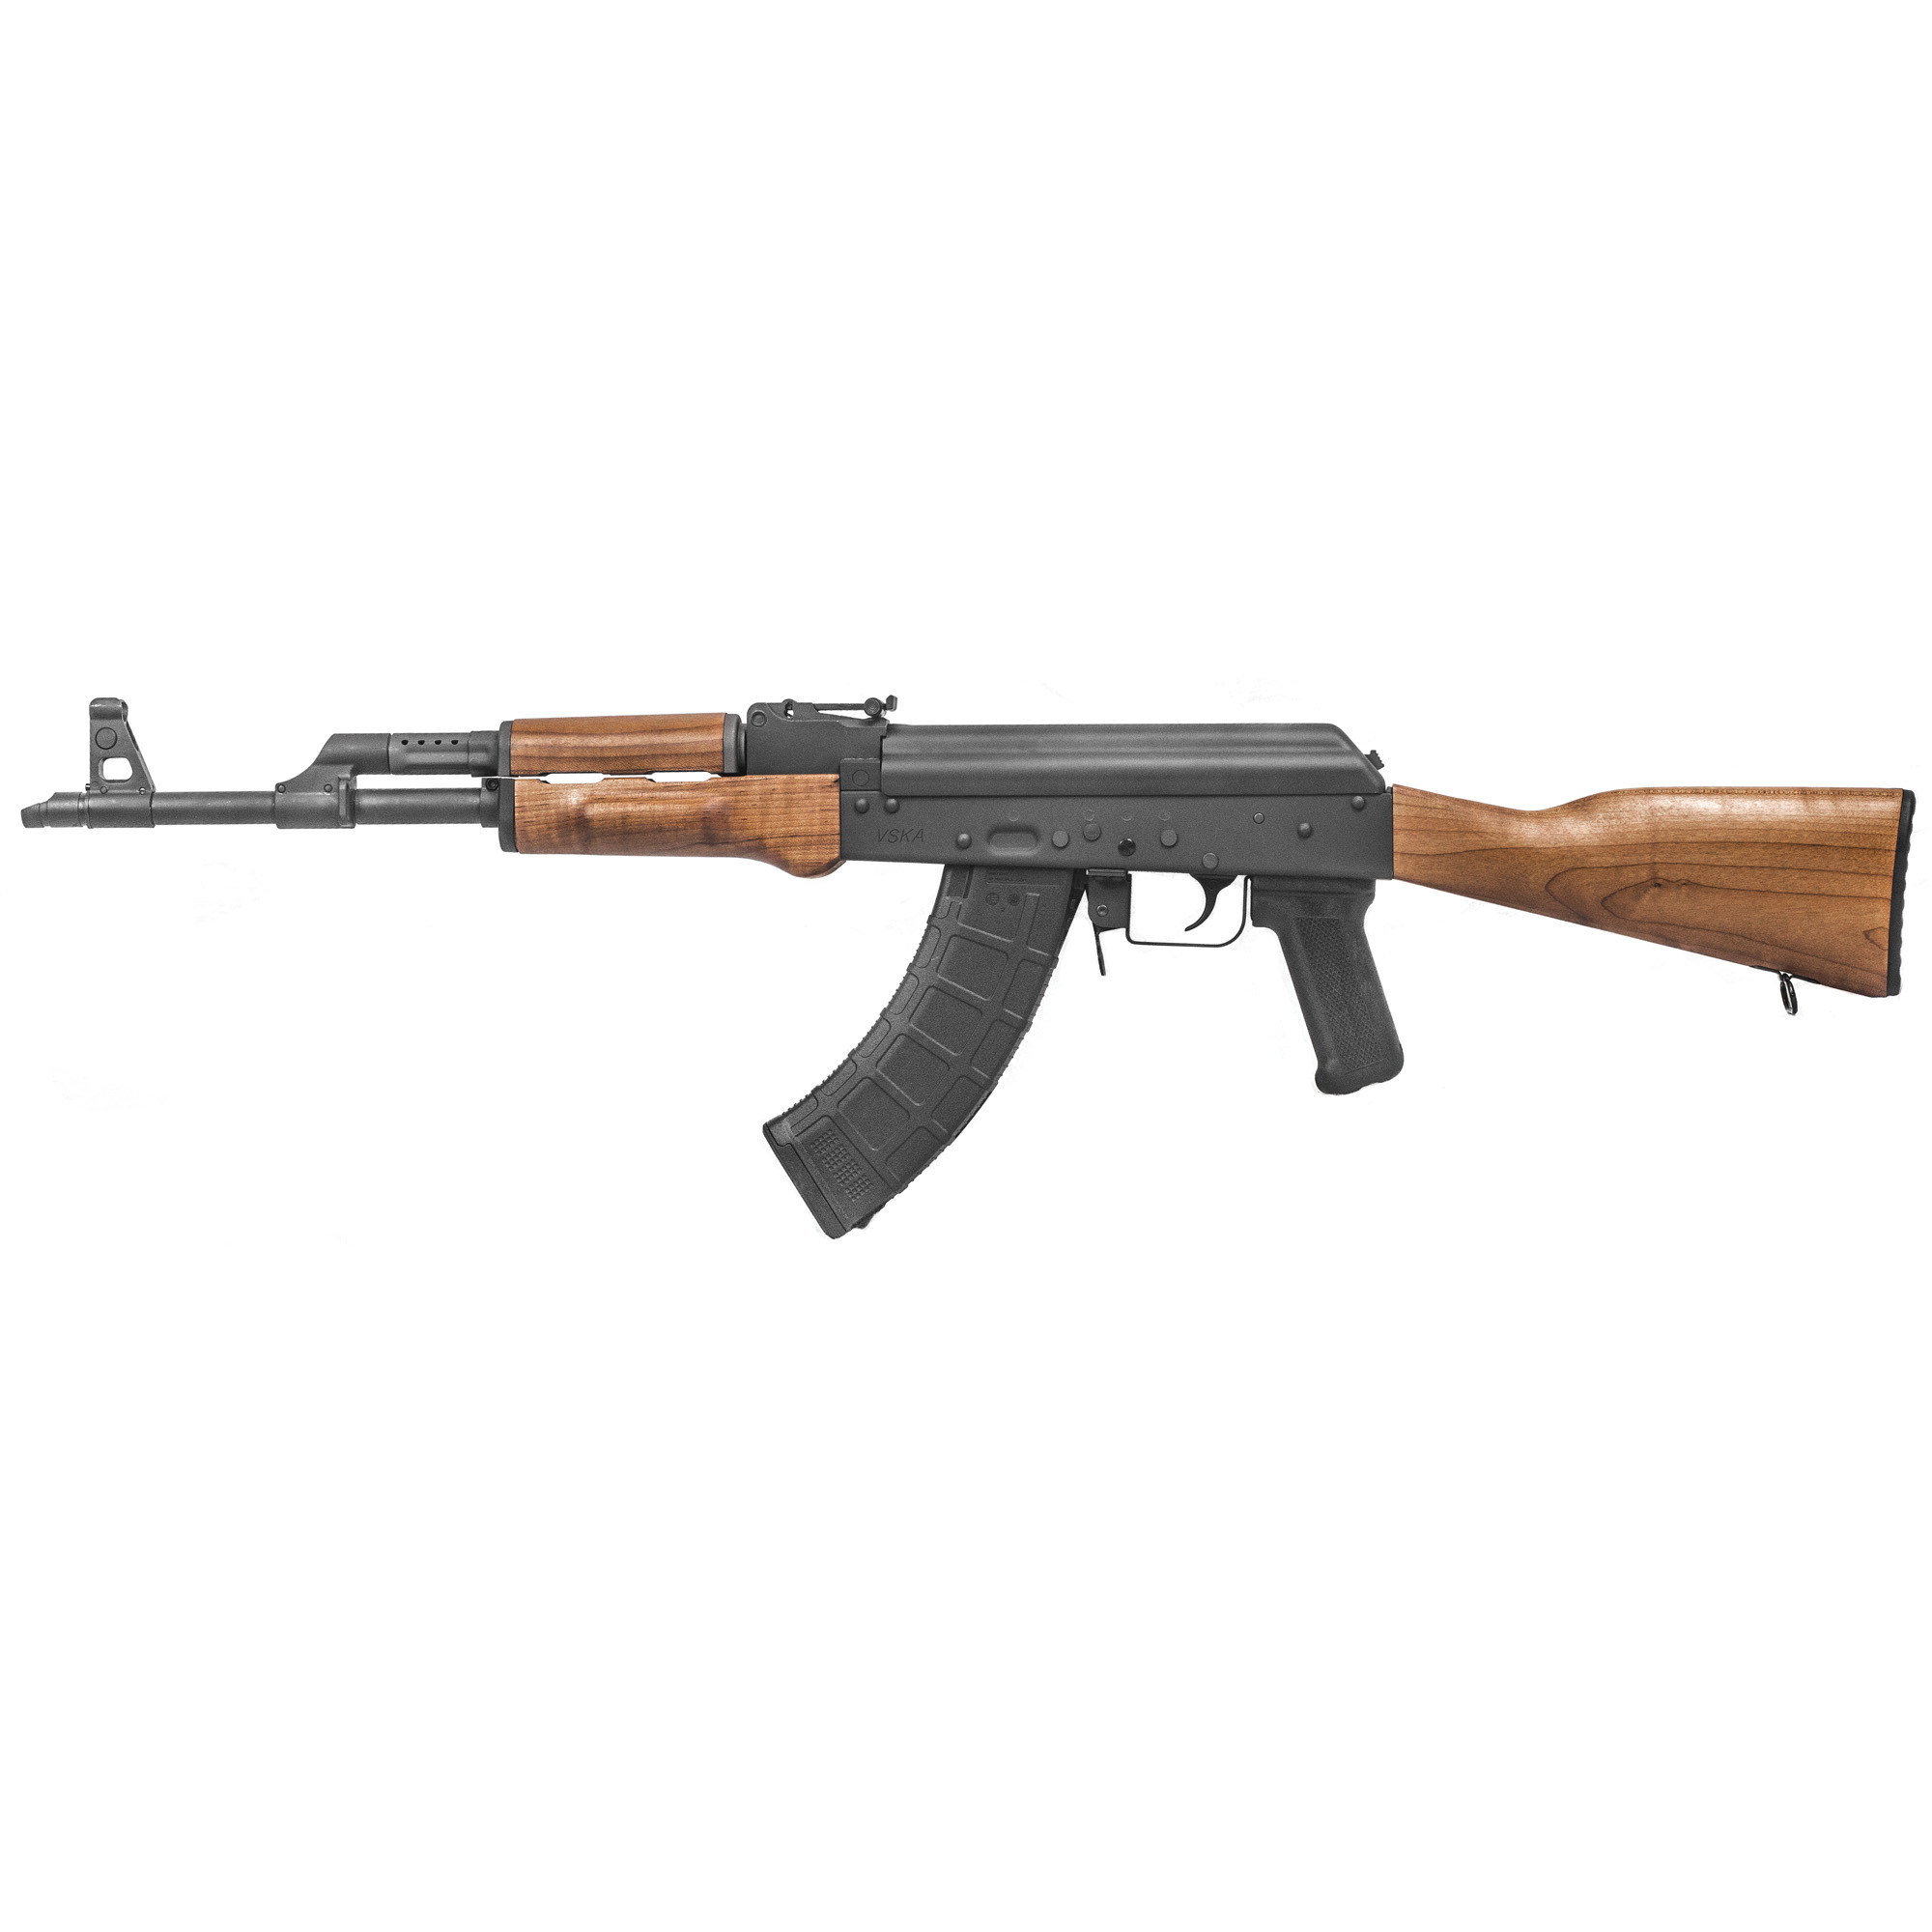 """For 2019 Century Arms introduces its newest heavy duty AK rifle"""" the VSKA (vis-kuh). Re-engineered with critical components using machined S7 tool steel"""" a material so highly regarded for it's ability to withstand heavy duty action that it's used in excavator teeth and jackhammer tips!"""